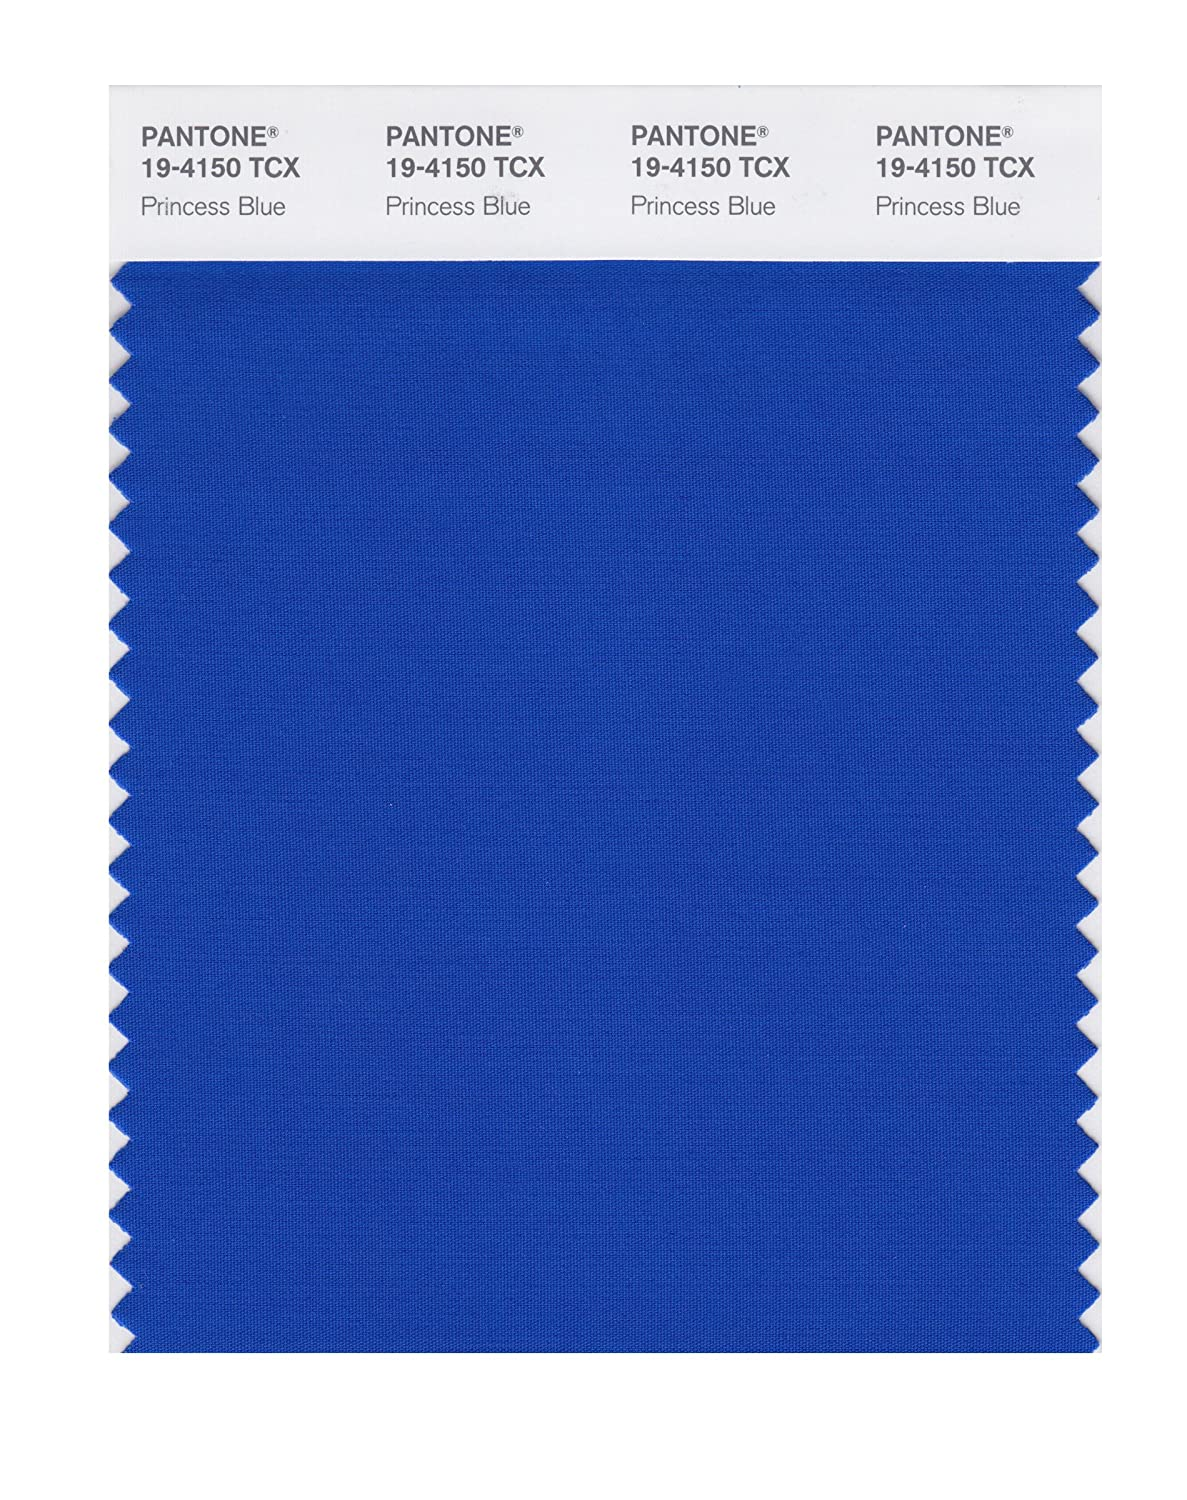 Pantone Colors Logos Pantone Smart 19-4150x Color